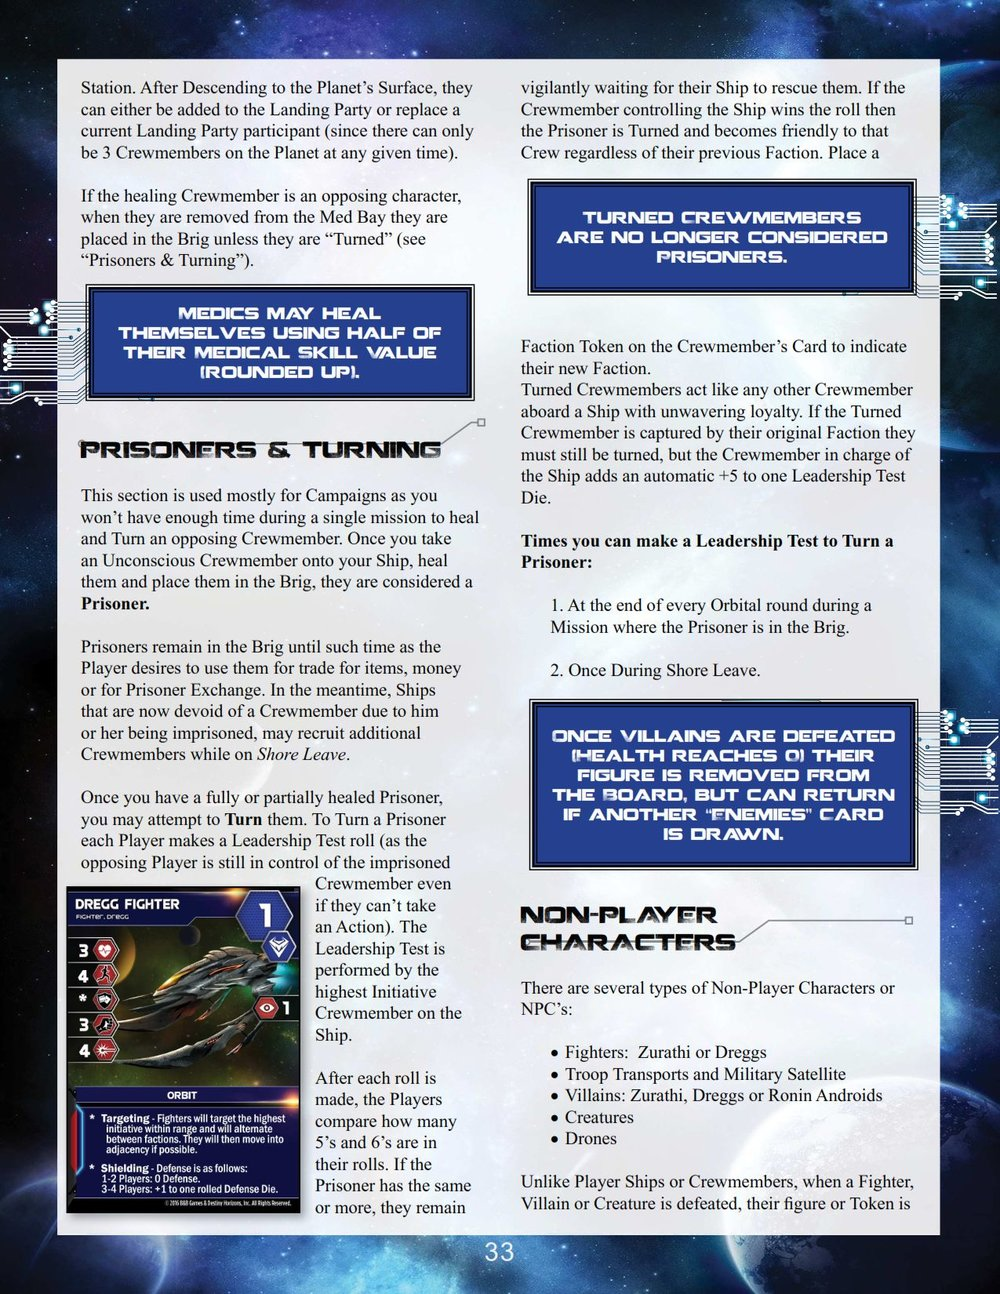 Renegades_Rule_Book_034.jpg